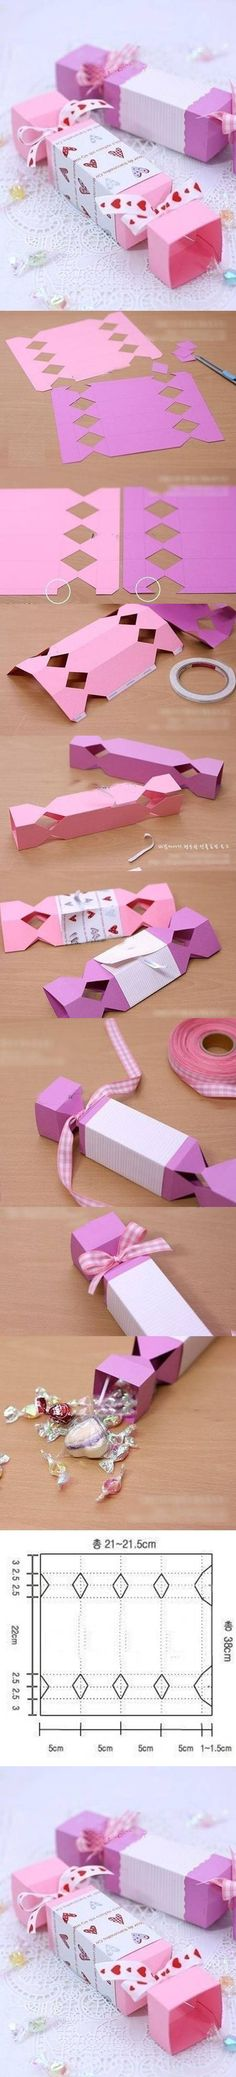 DIY Cute Candy Gift Box DIY Projects | UsefulDIY.com